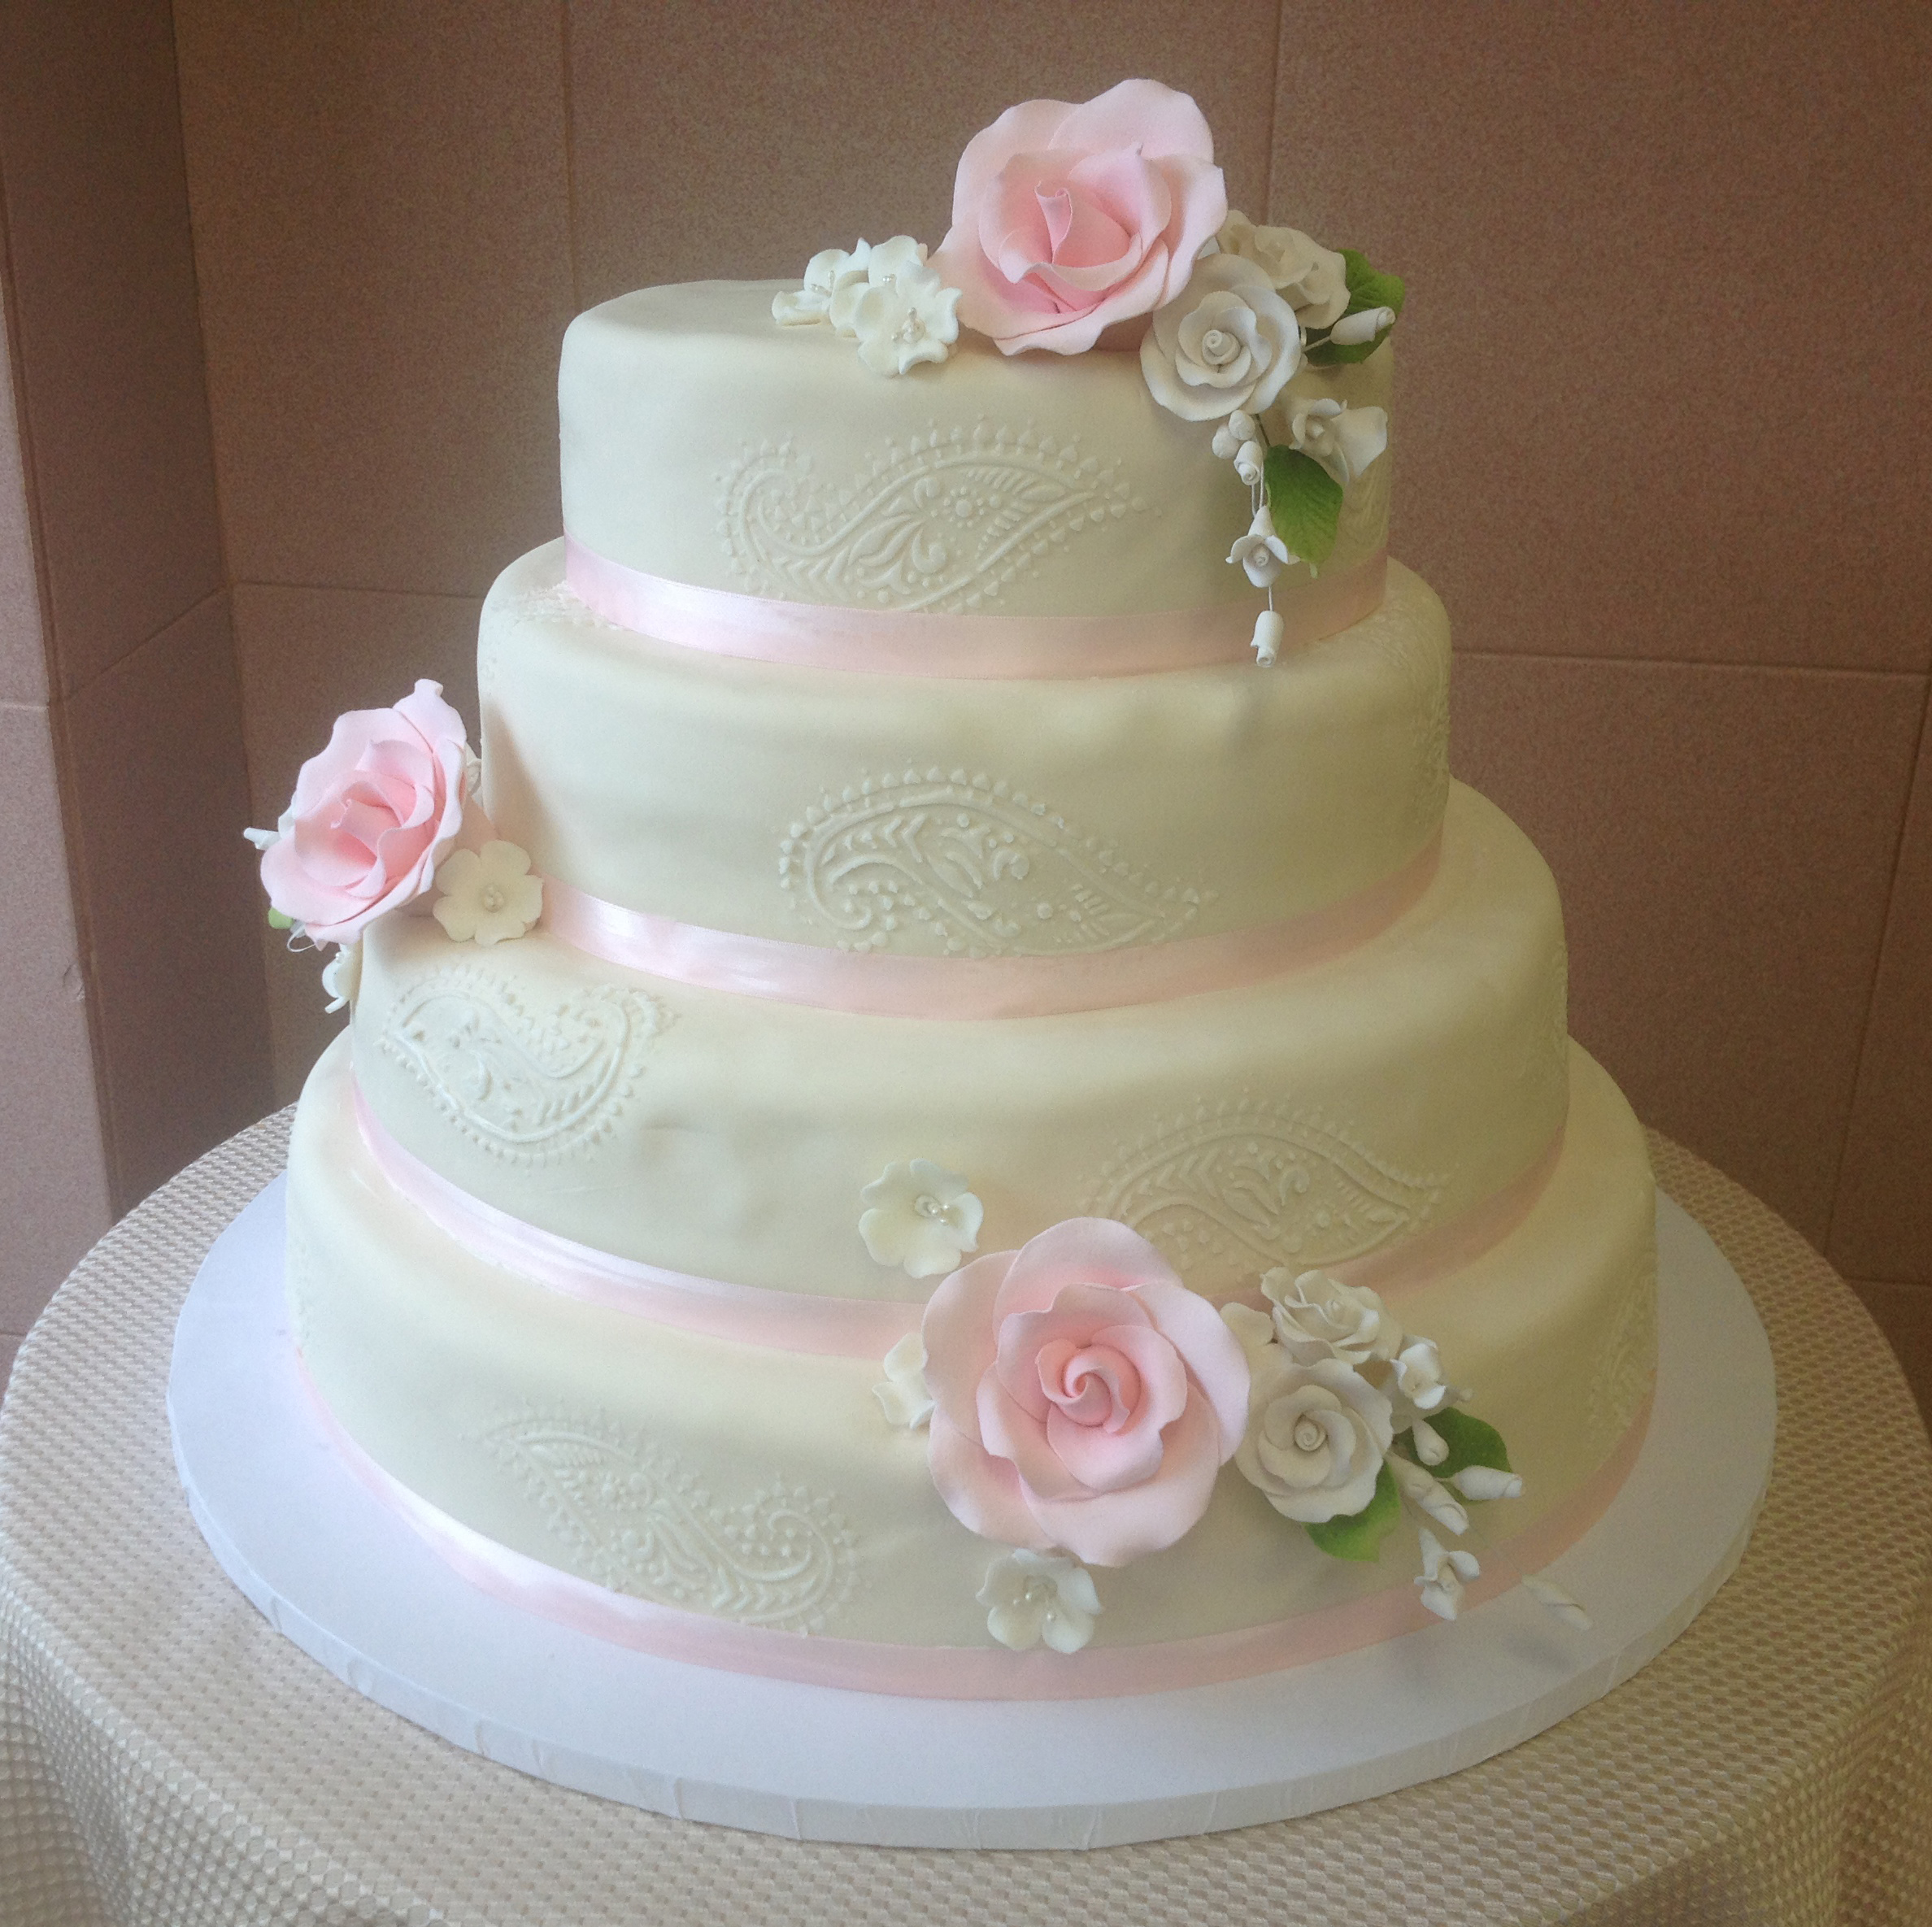 Ivory Rolled Fondant, Stenciling, Rolled Fondant Roses